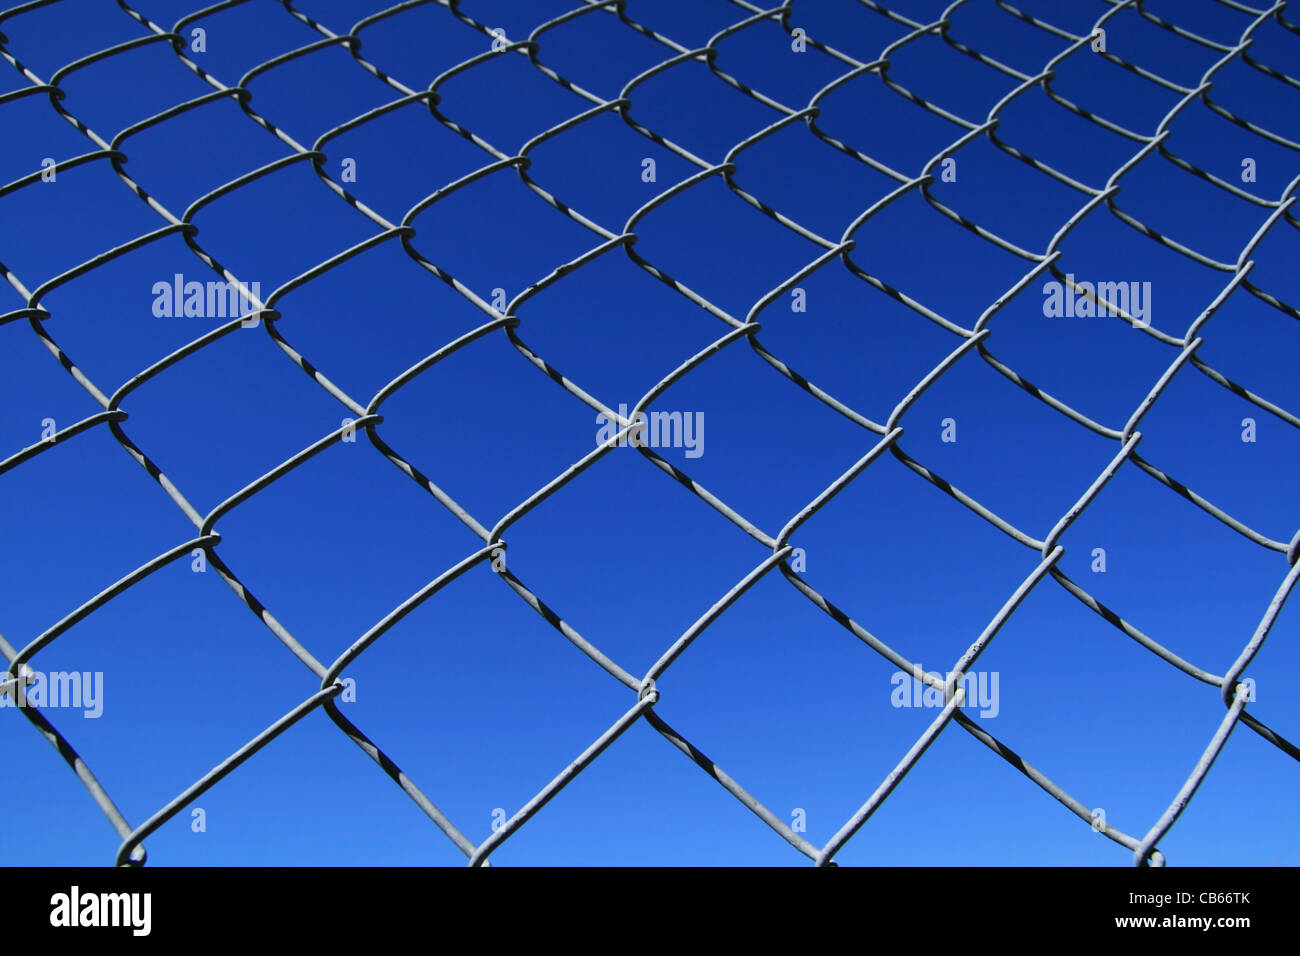 boundary fence stockfotos boundary fence bilder alamy. Black Bedroom Furniture Sets. Home Design Ideas